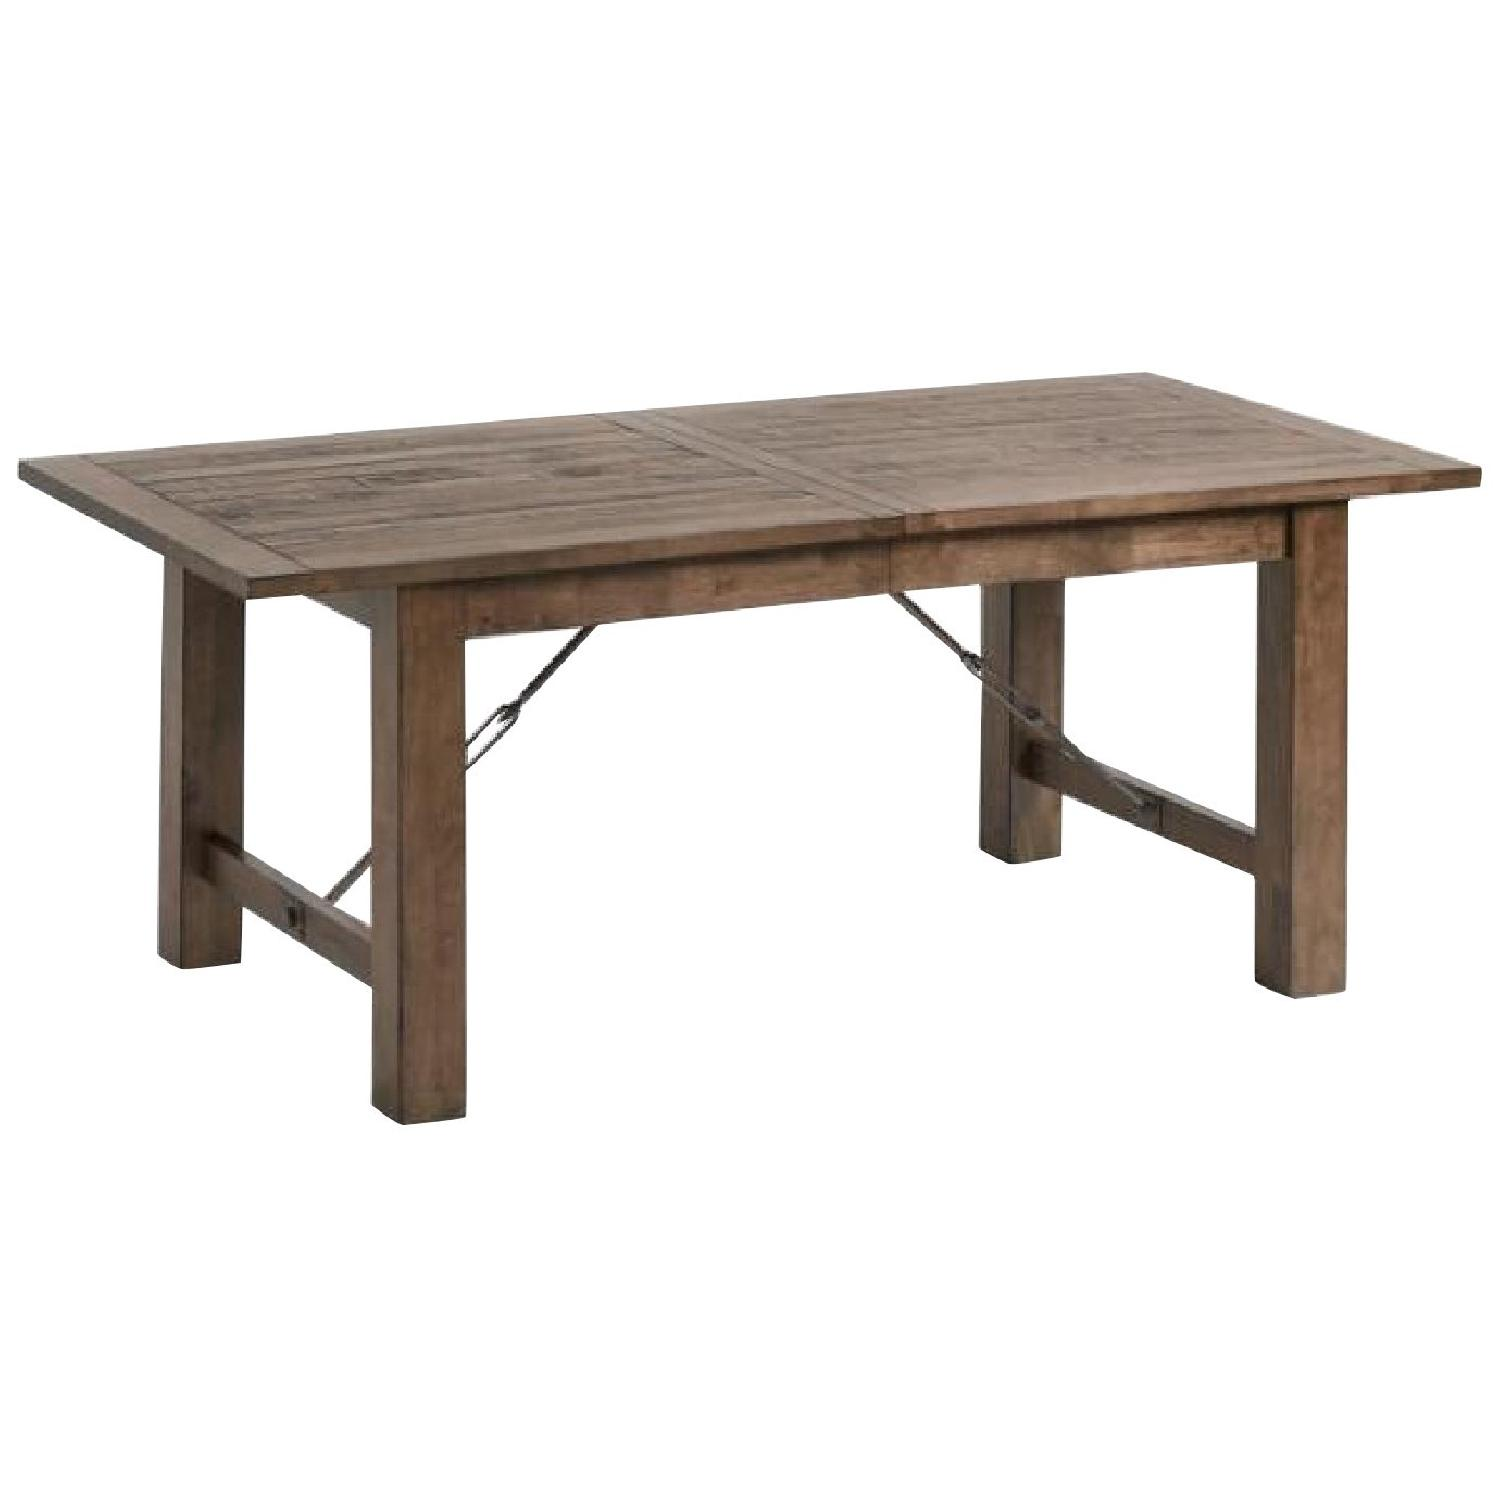 World Market Extension Table w/ 5 Chairs - image-0